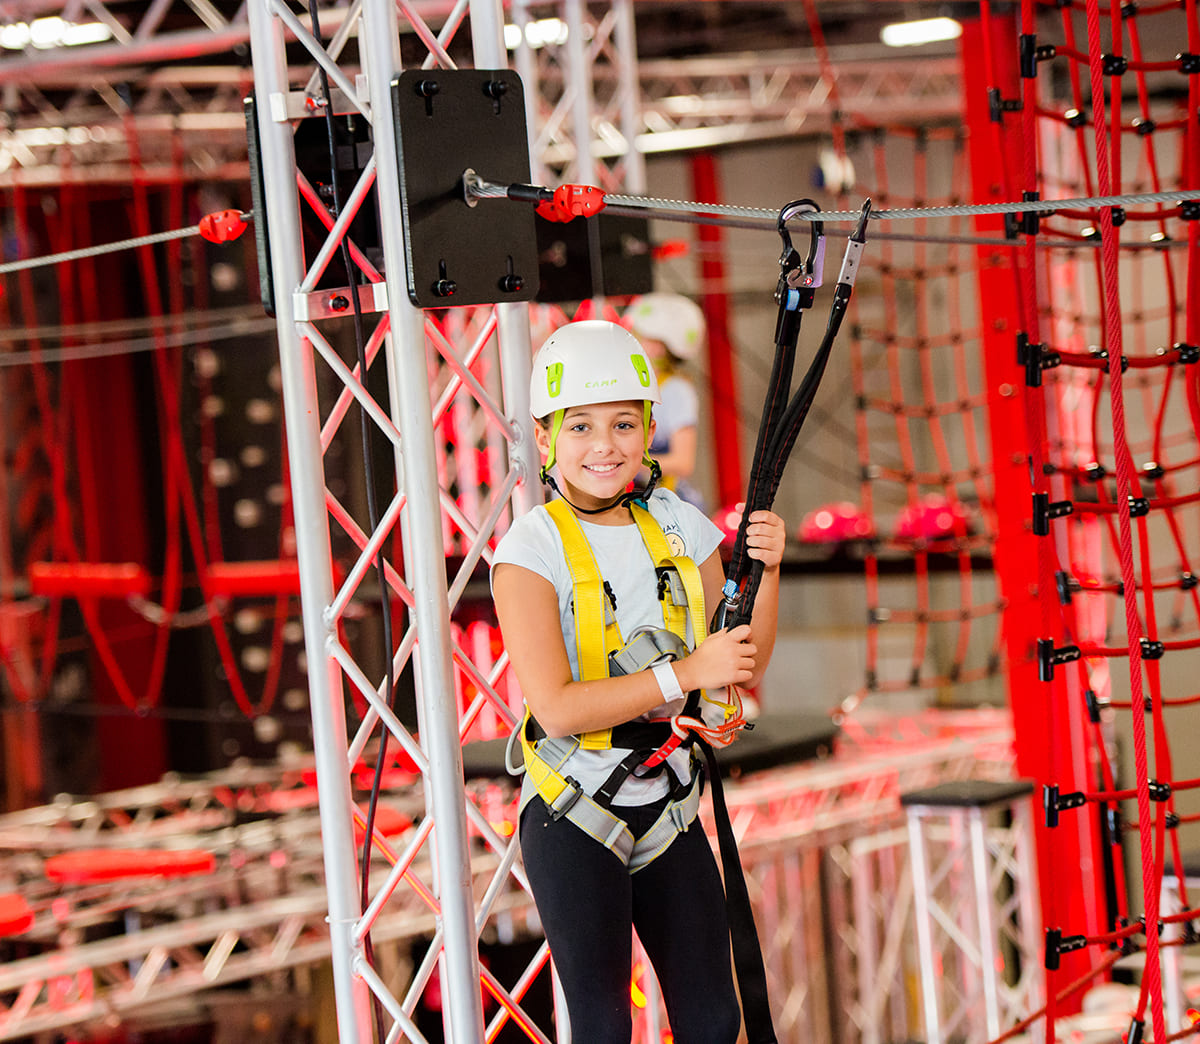 A young girl on an Adrenaline Monkey obstacle